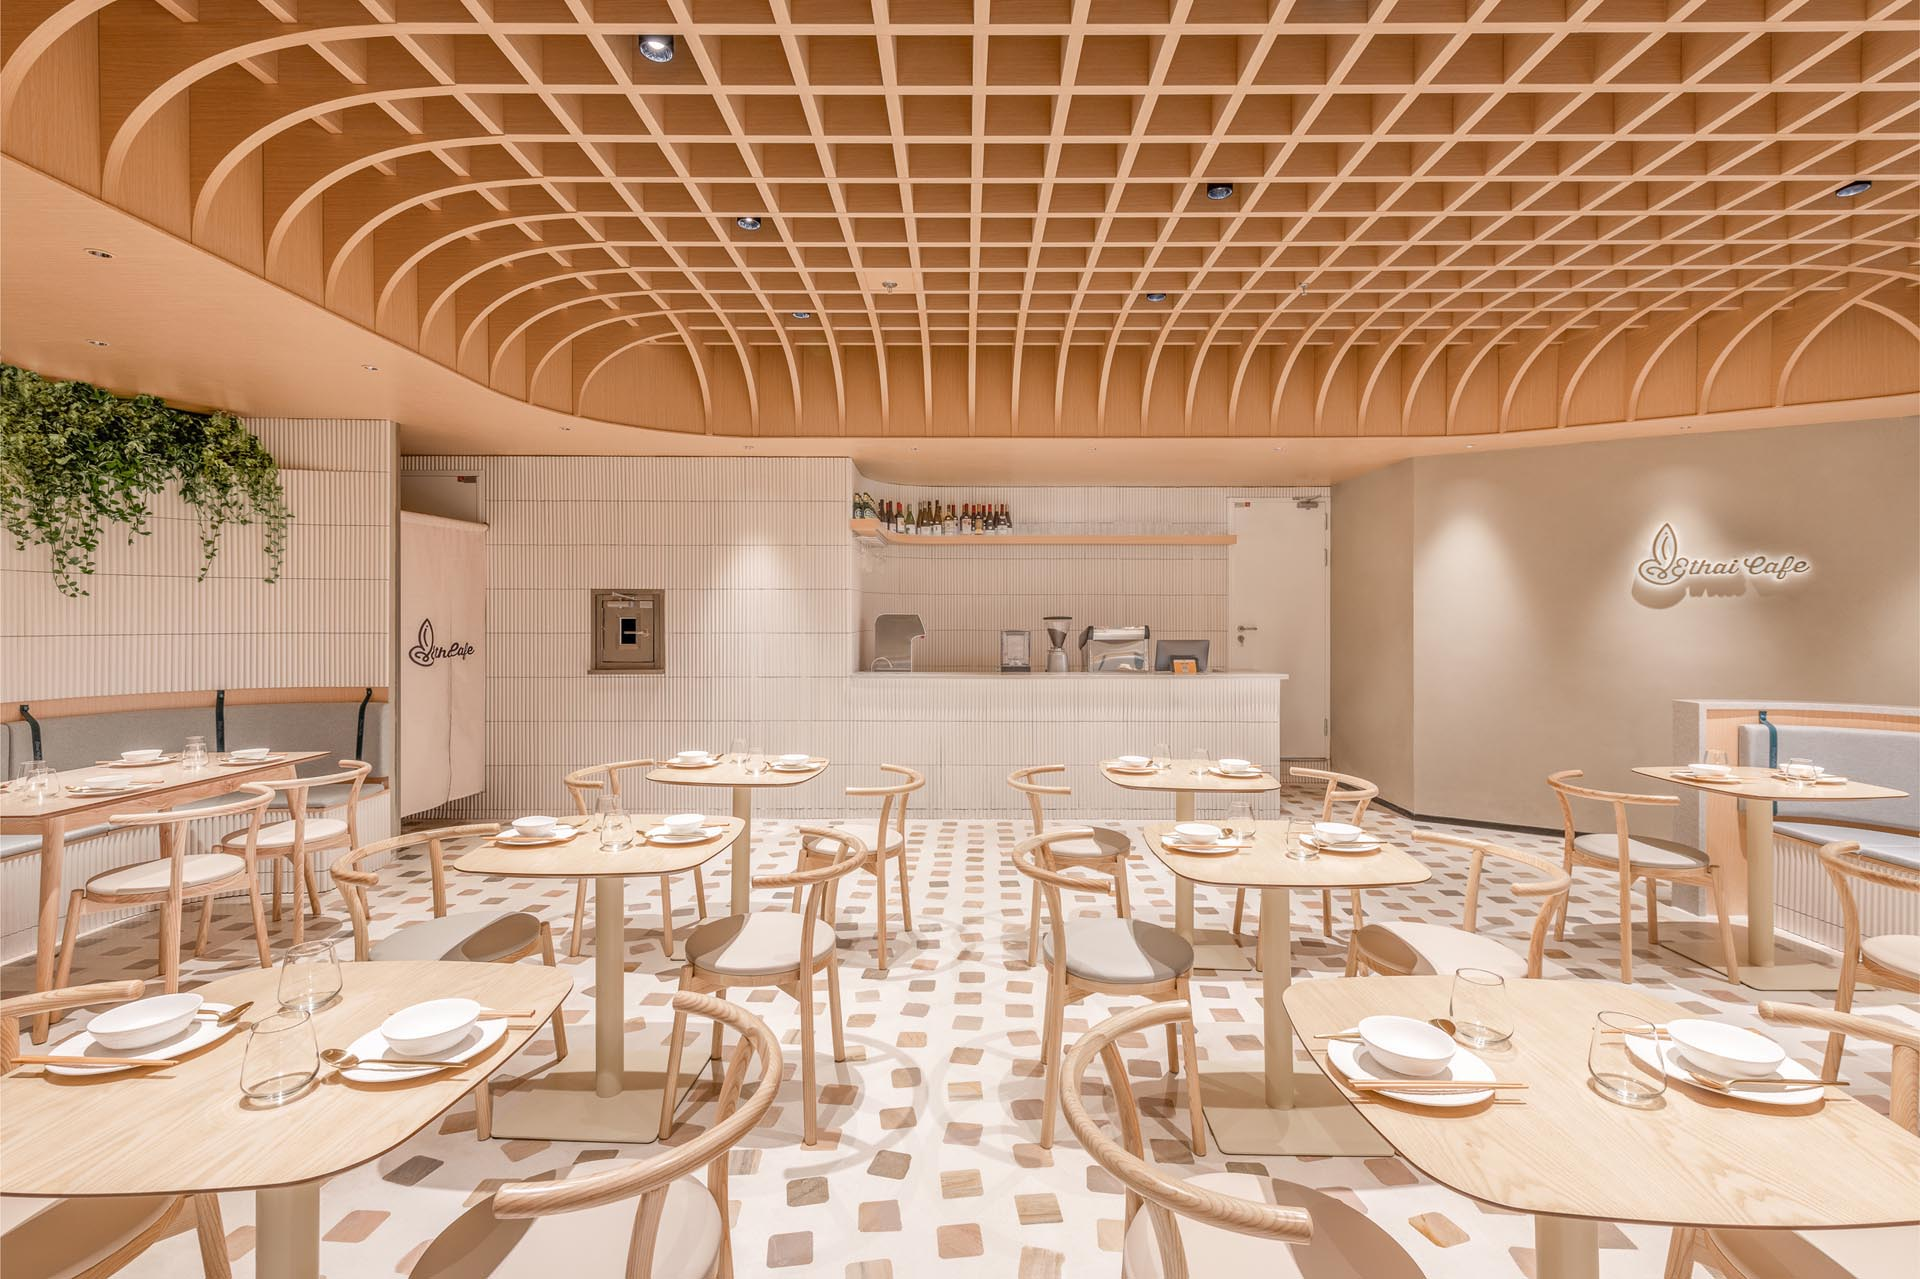 A modern cafe with a design that includes a dome-shaped ceiling, formed by a grid of wooden beams, in which conceals the space's lighting.